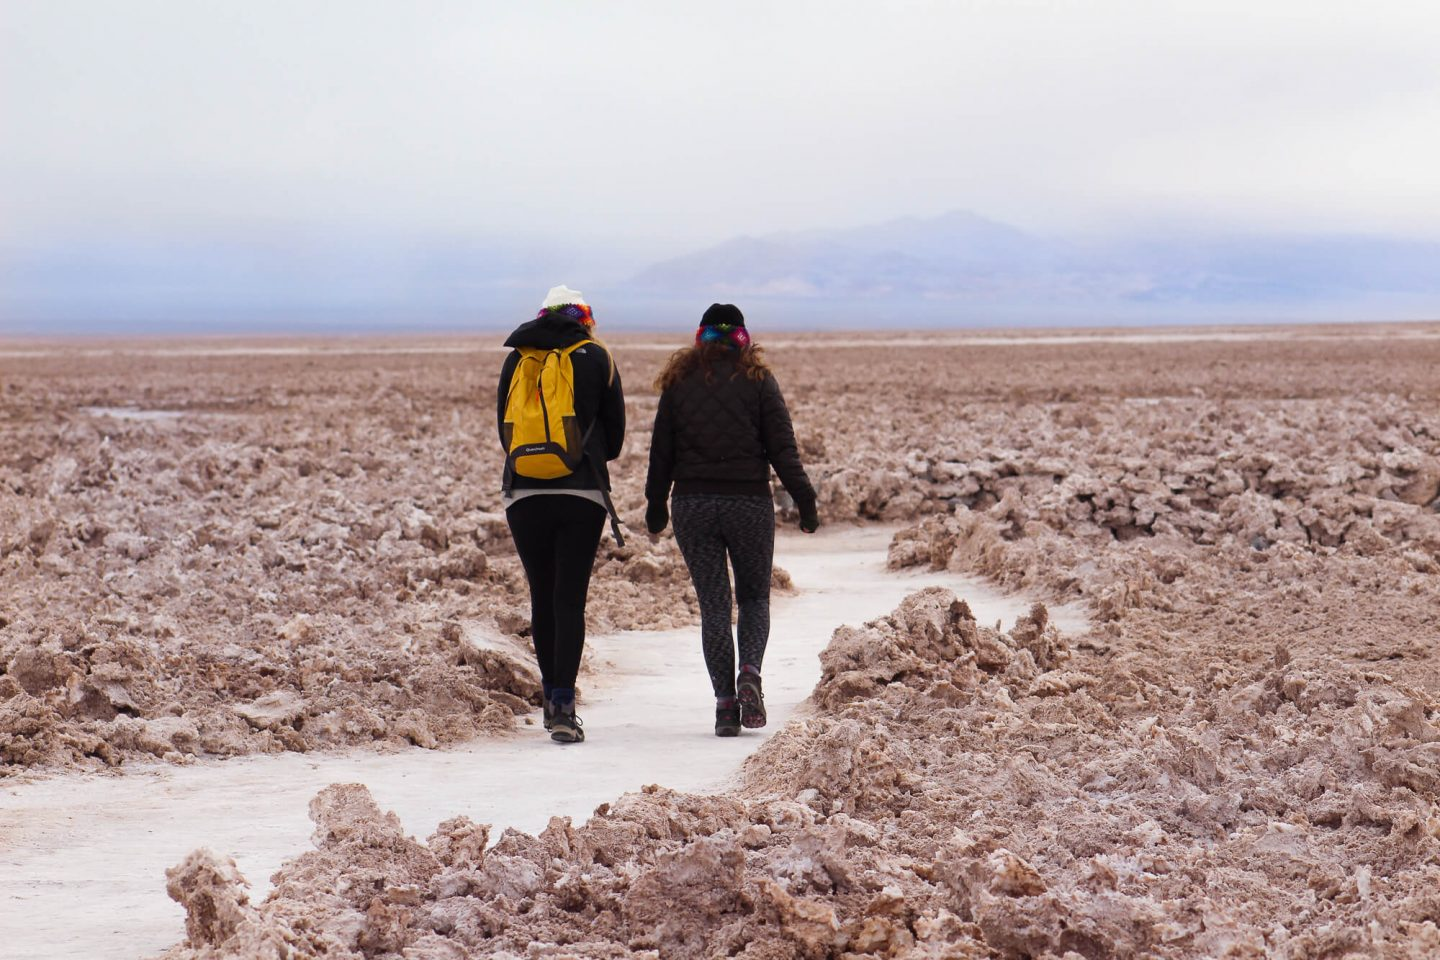 The Salar de Atacama, or Atacama Salt Flats are the largest salt flats in Chile. This as one of the many tours to book in the Atacama Desert.